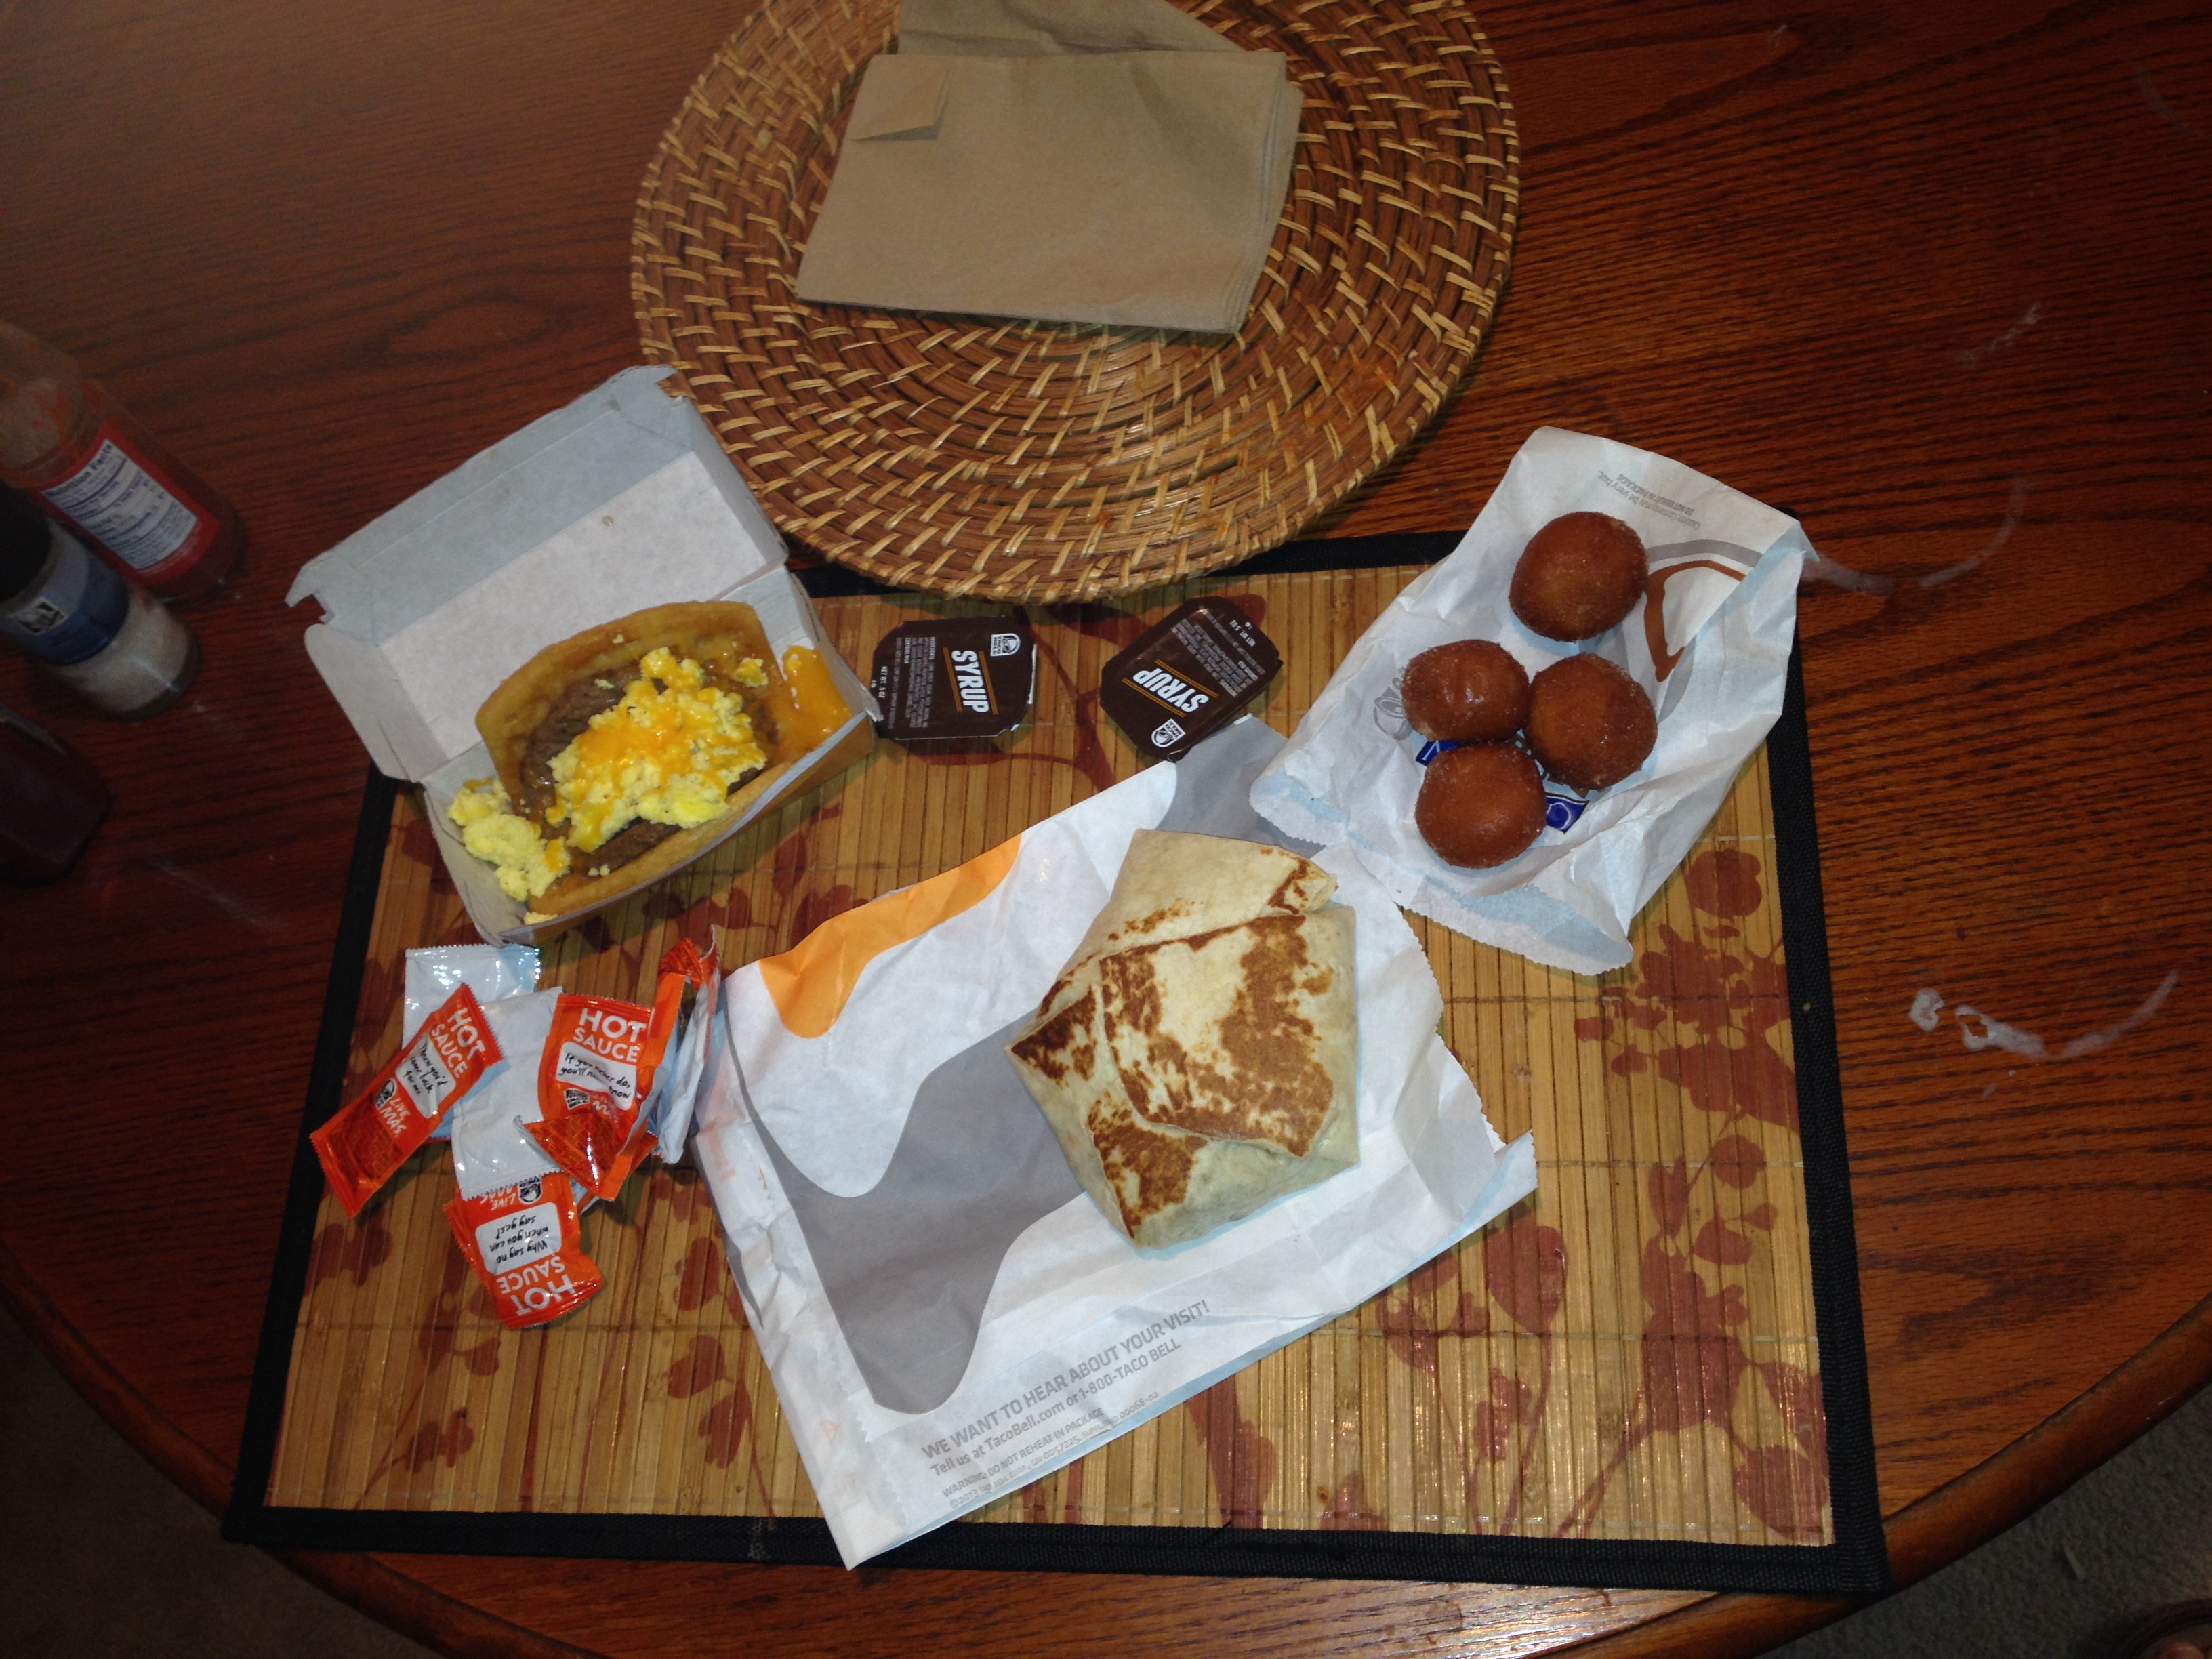 Clockwise from upper left: Waffle taco, Cinnabon Delights, A.M. Crunchwrap.